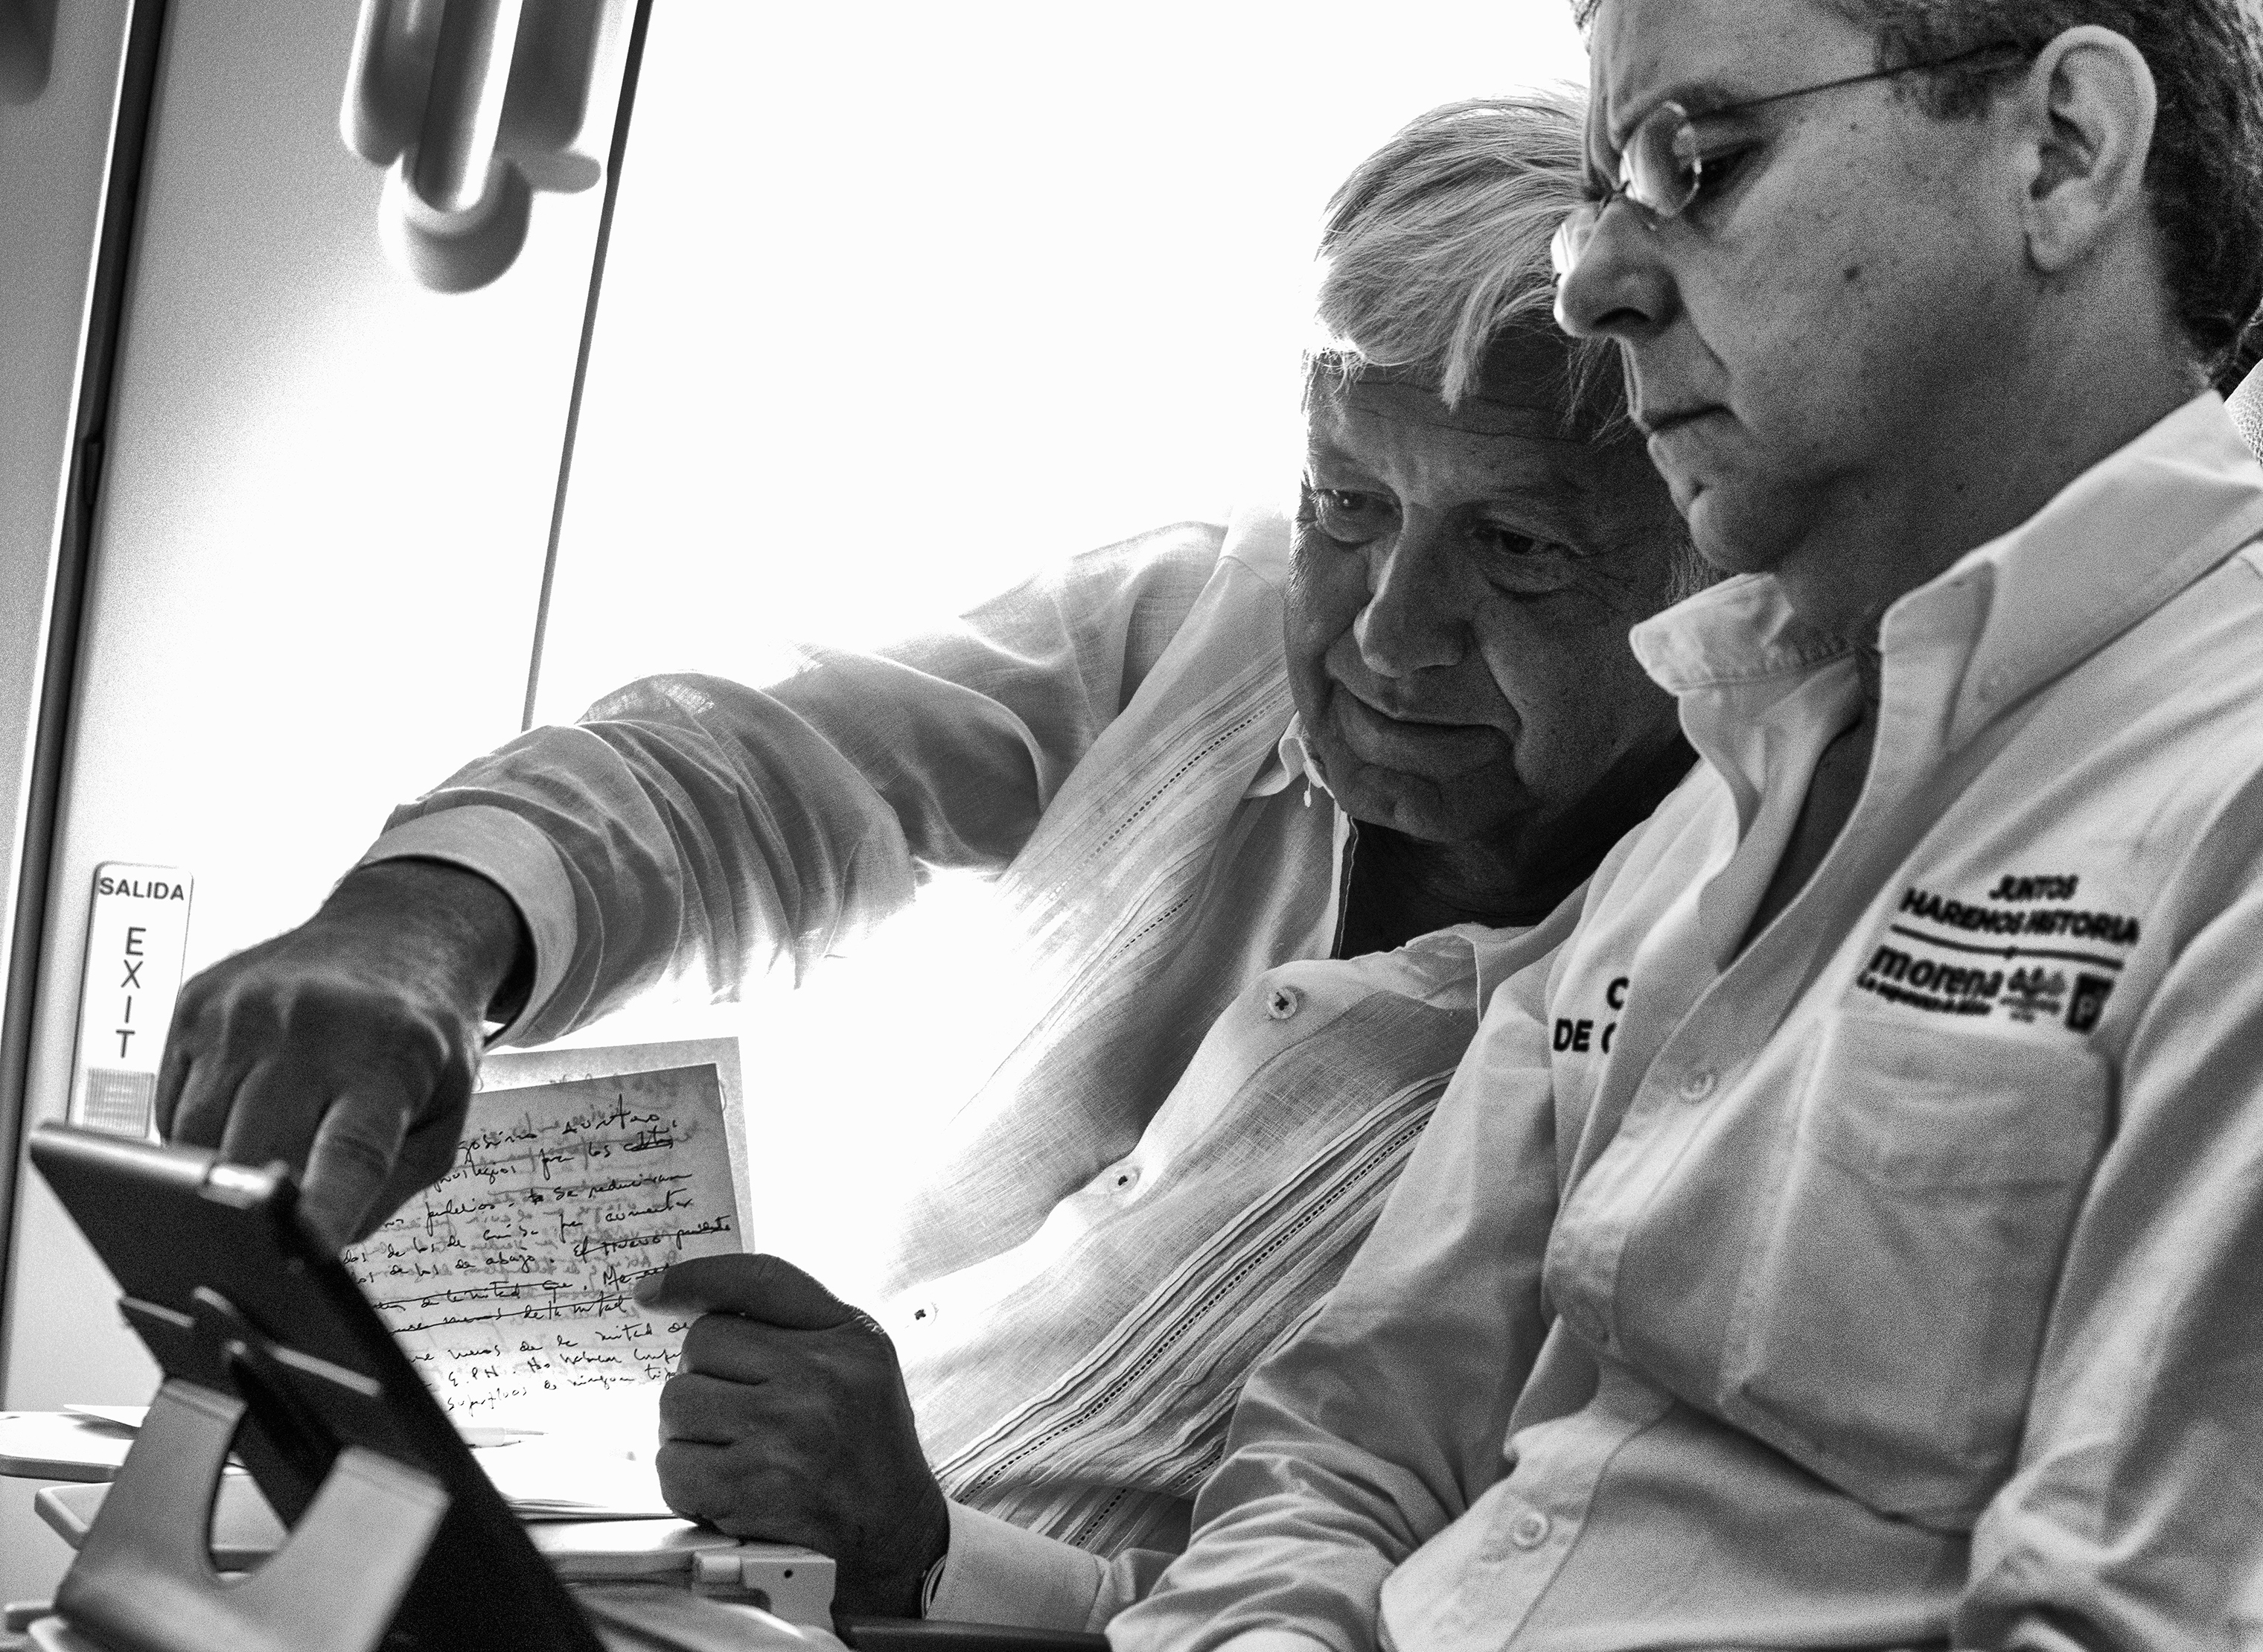 López Obrador works on a final campaign speech, alongside his Press Secretary César Yáñez, on a commercial flight to Cancún ahead of the July 1 elections.